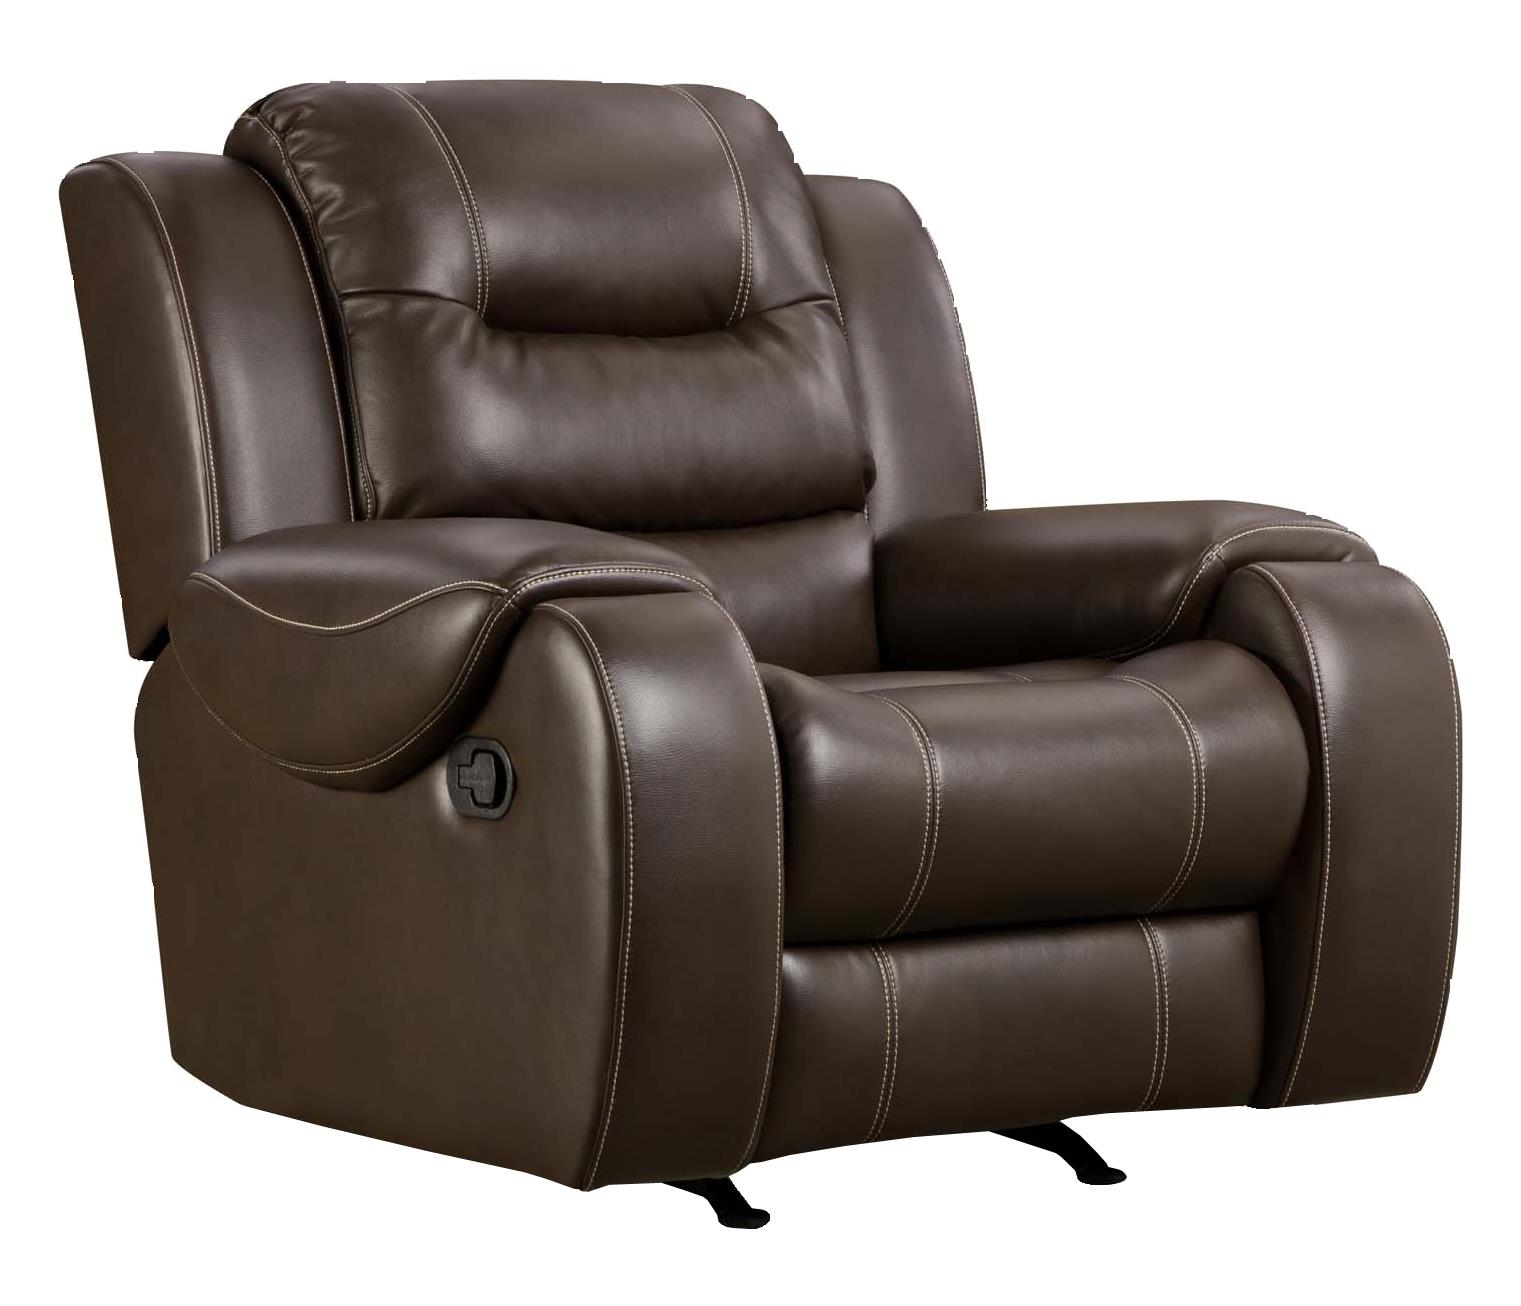 Corinthian Madison Rocker Recliner - Item Number: 71401-10-Made-Out